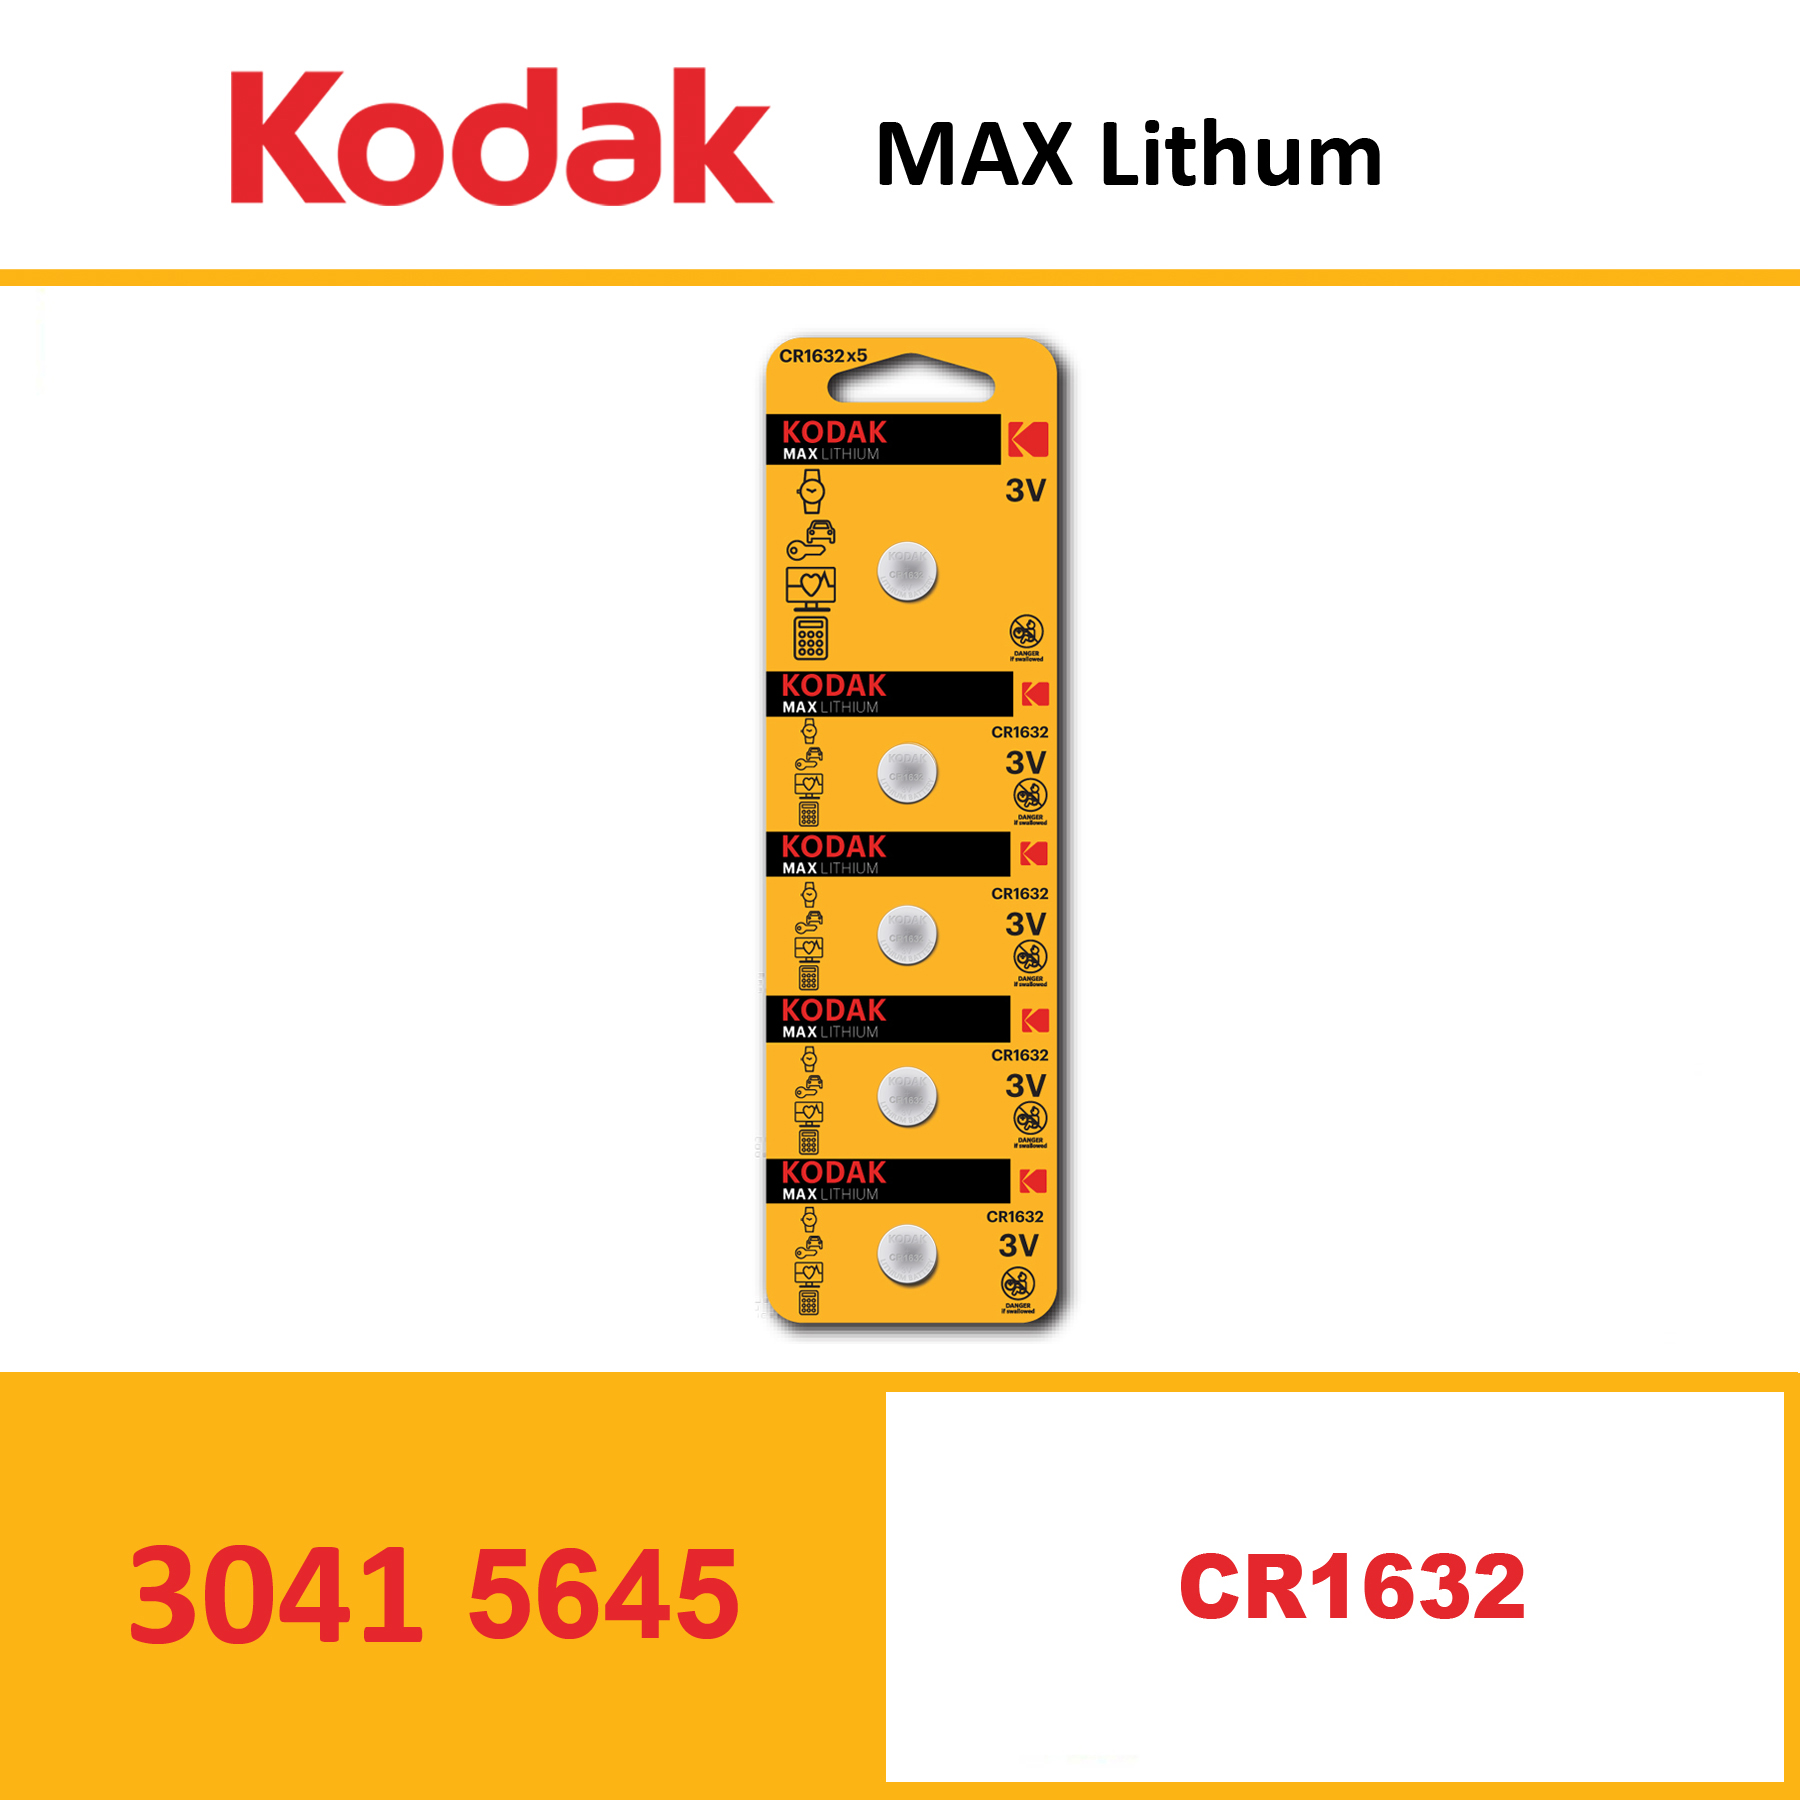 KODAK KCR1632 MAX Lithium coin cell Pack of 5 Piece